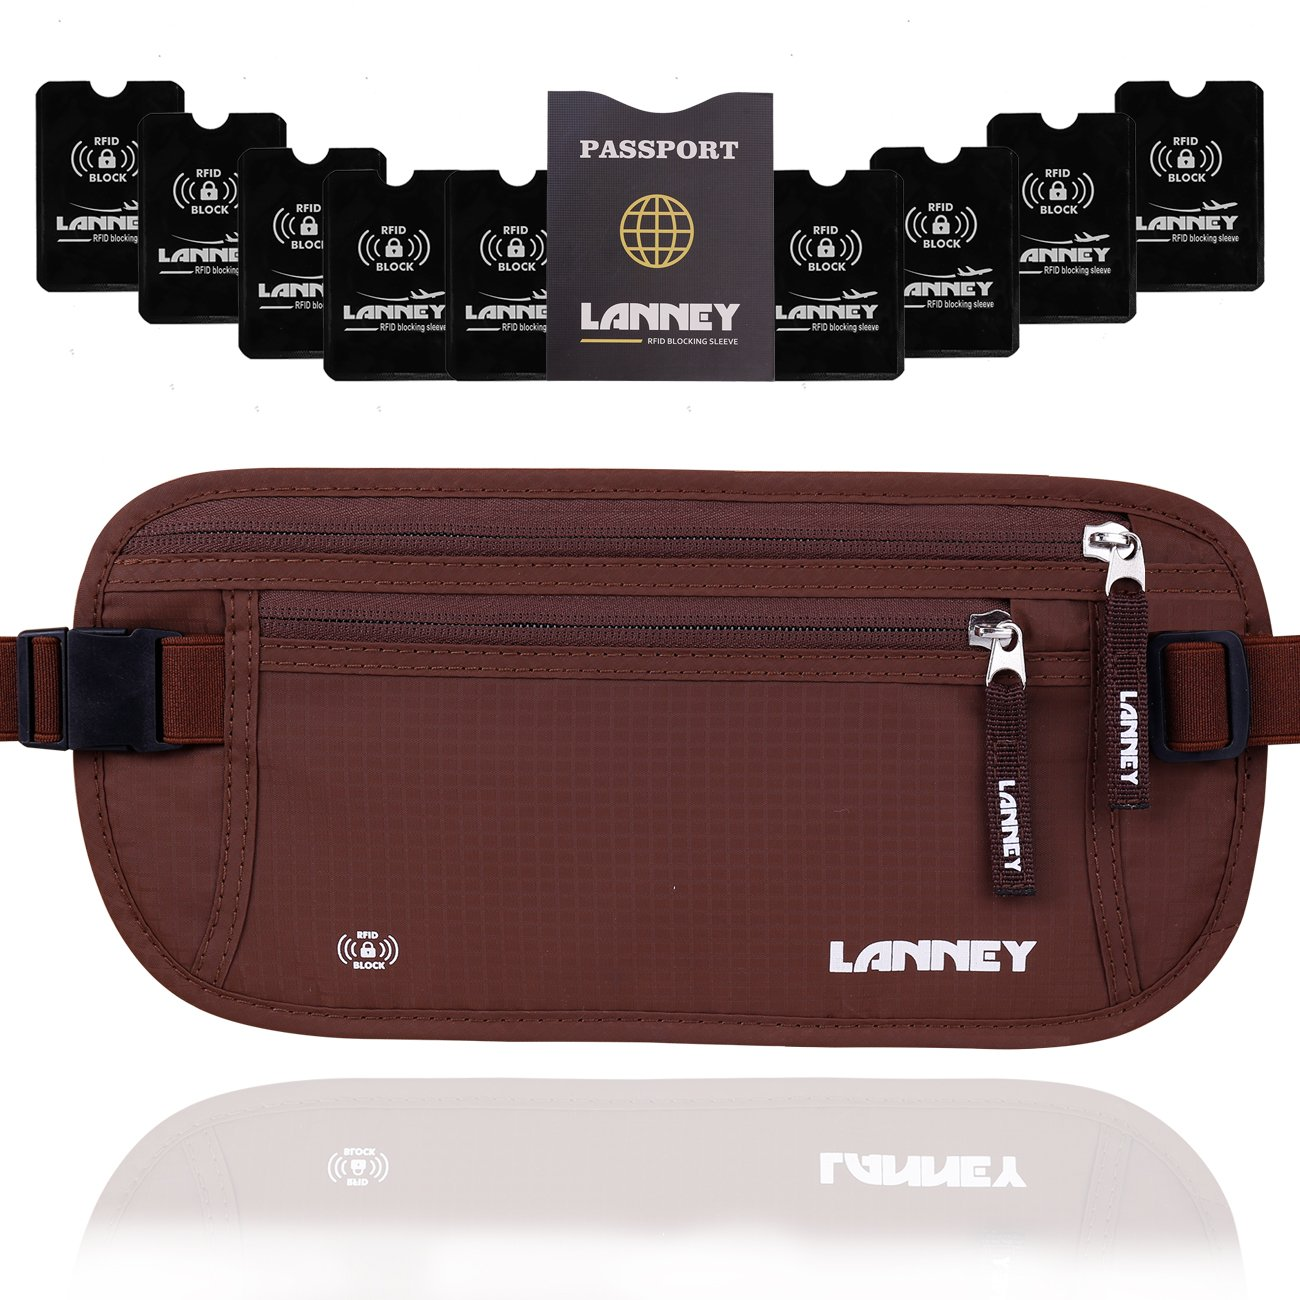 Money Belt for Travel, Waist Wallet RFID Blocking Passport Holder Concealed Anti Theft Stash Pouch for Men Women Travelling and Daily Use, Bonus 10 RFID Blocking Sleeves, Brown by LANNEY